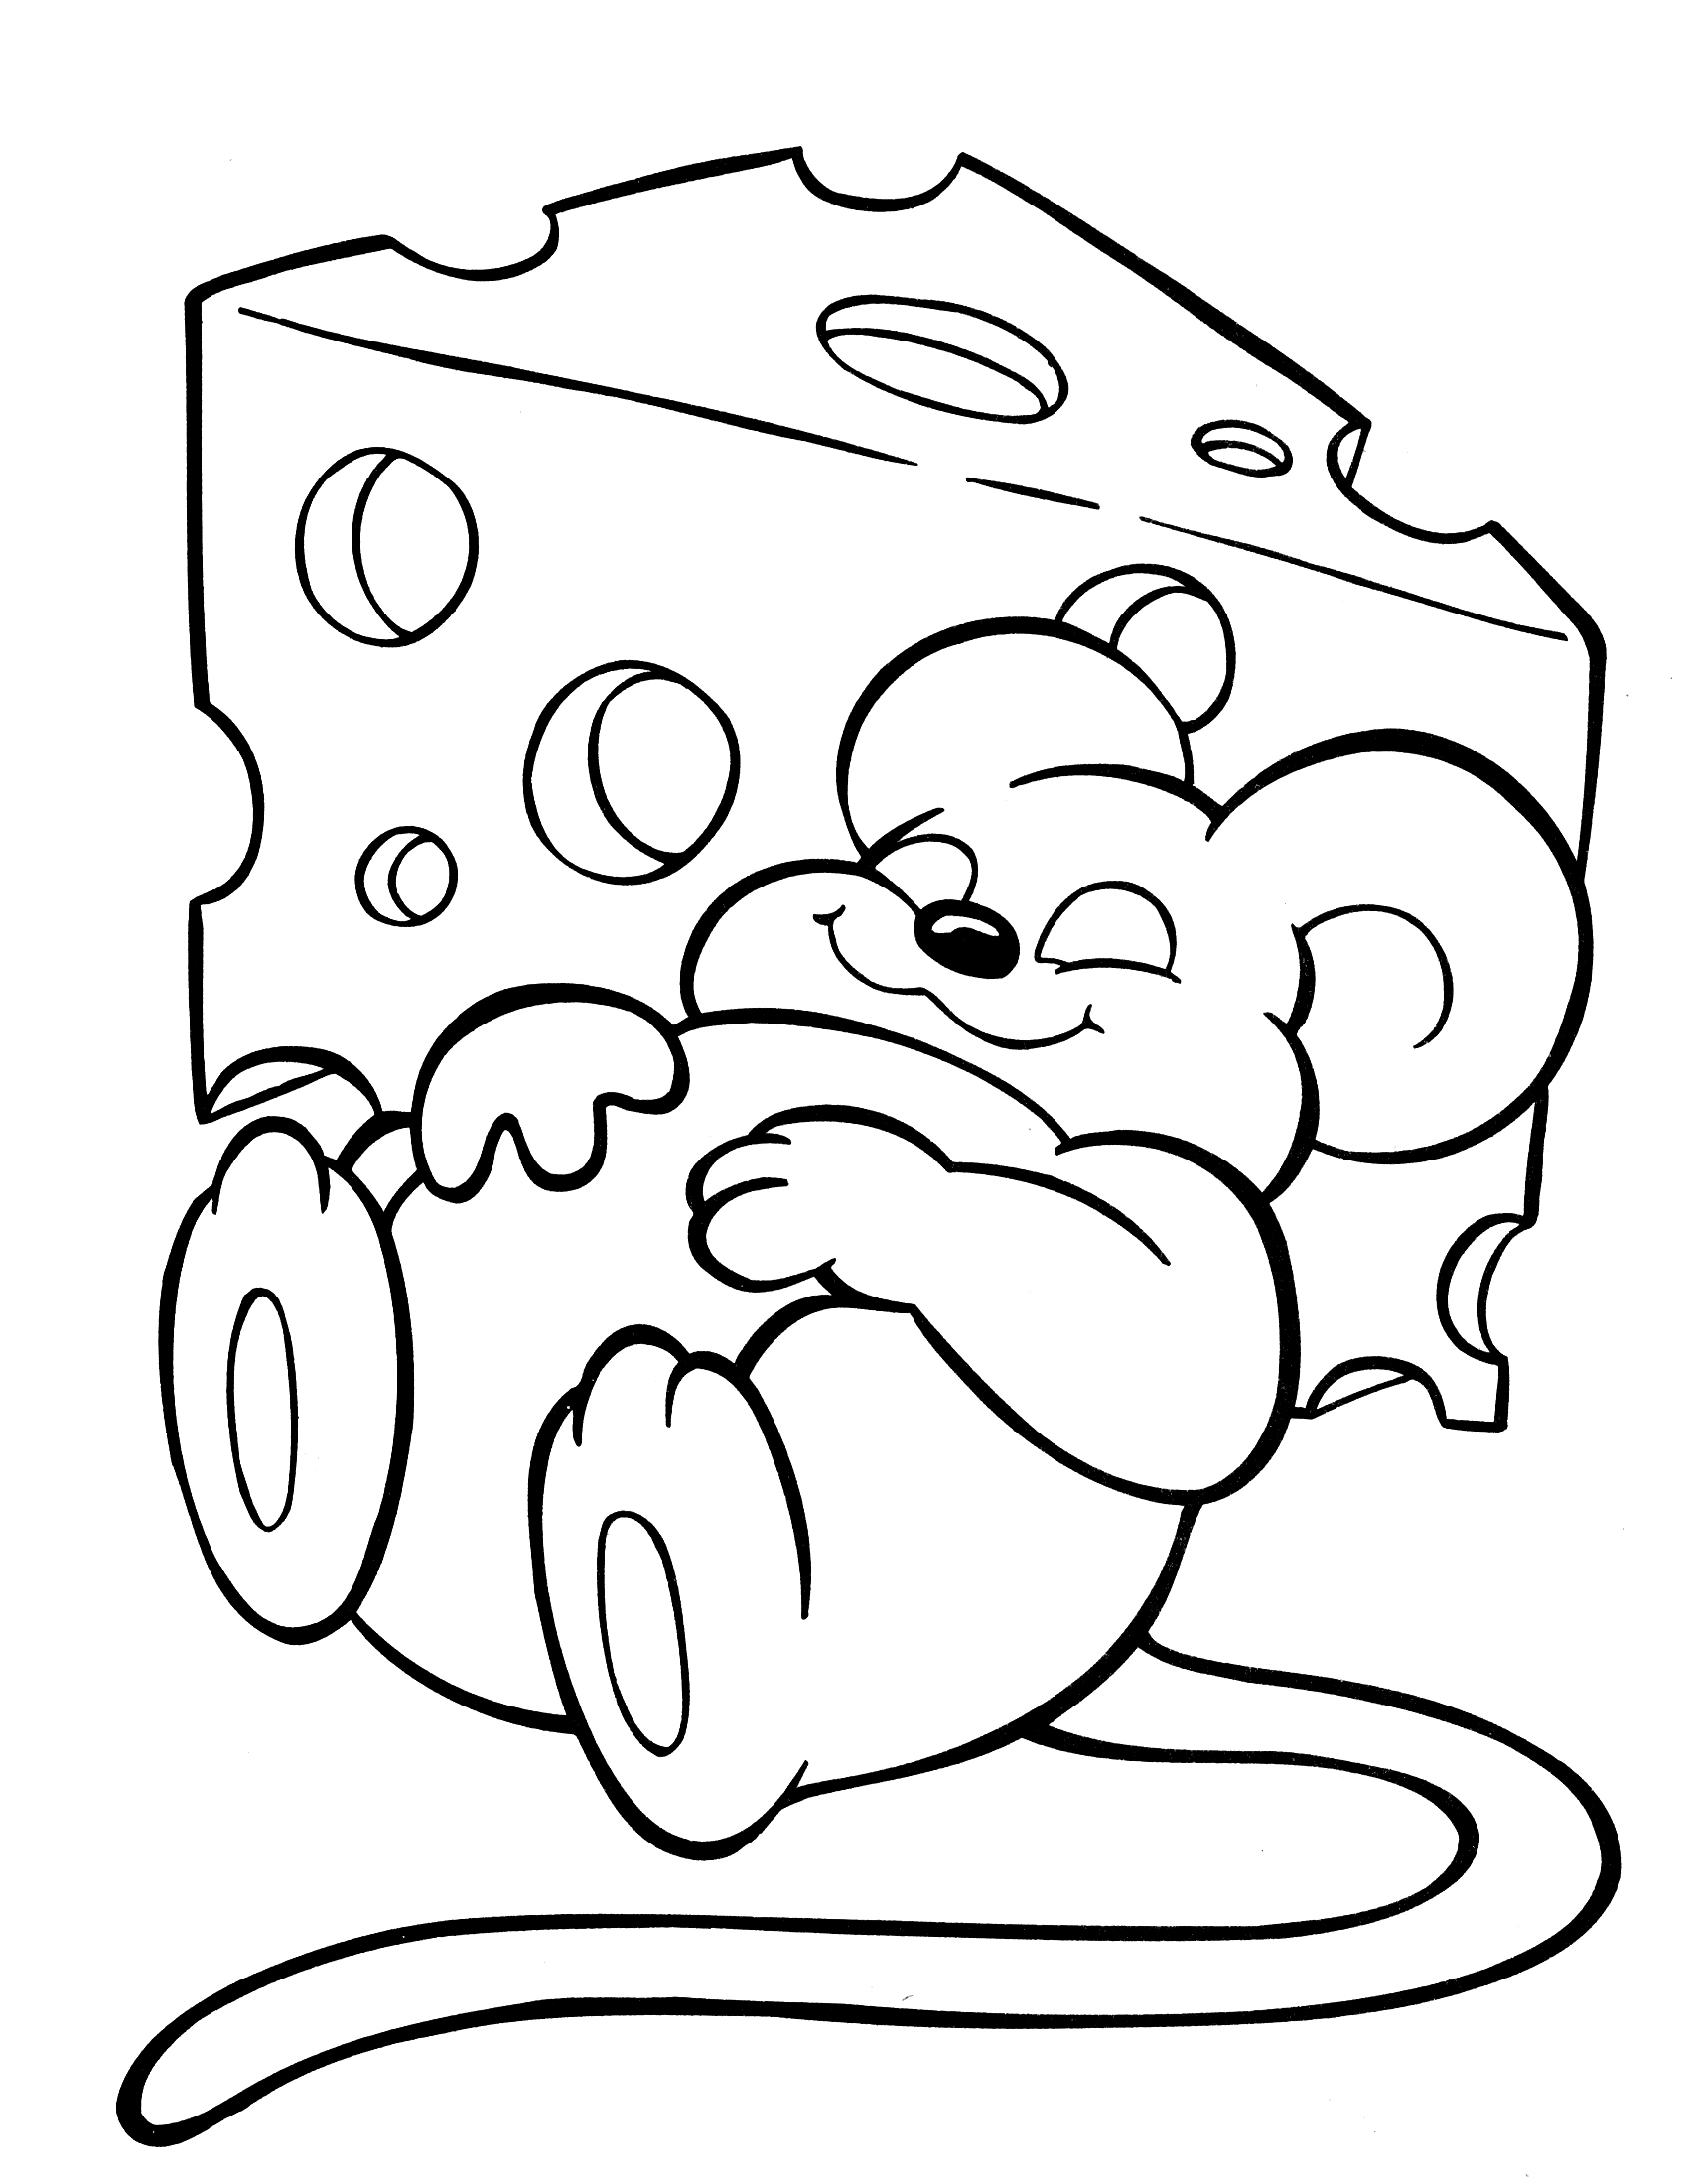 Crayola Fish Coloring Pages 45 Artistic Crayola Coloring Pages